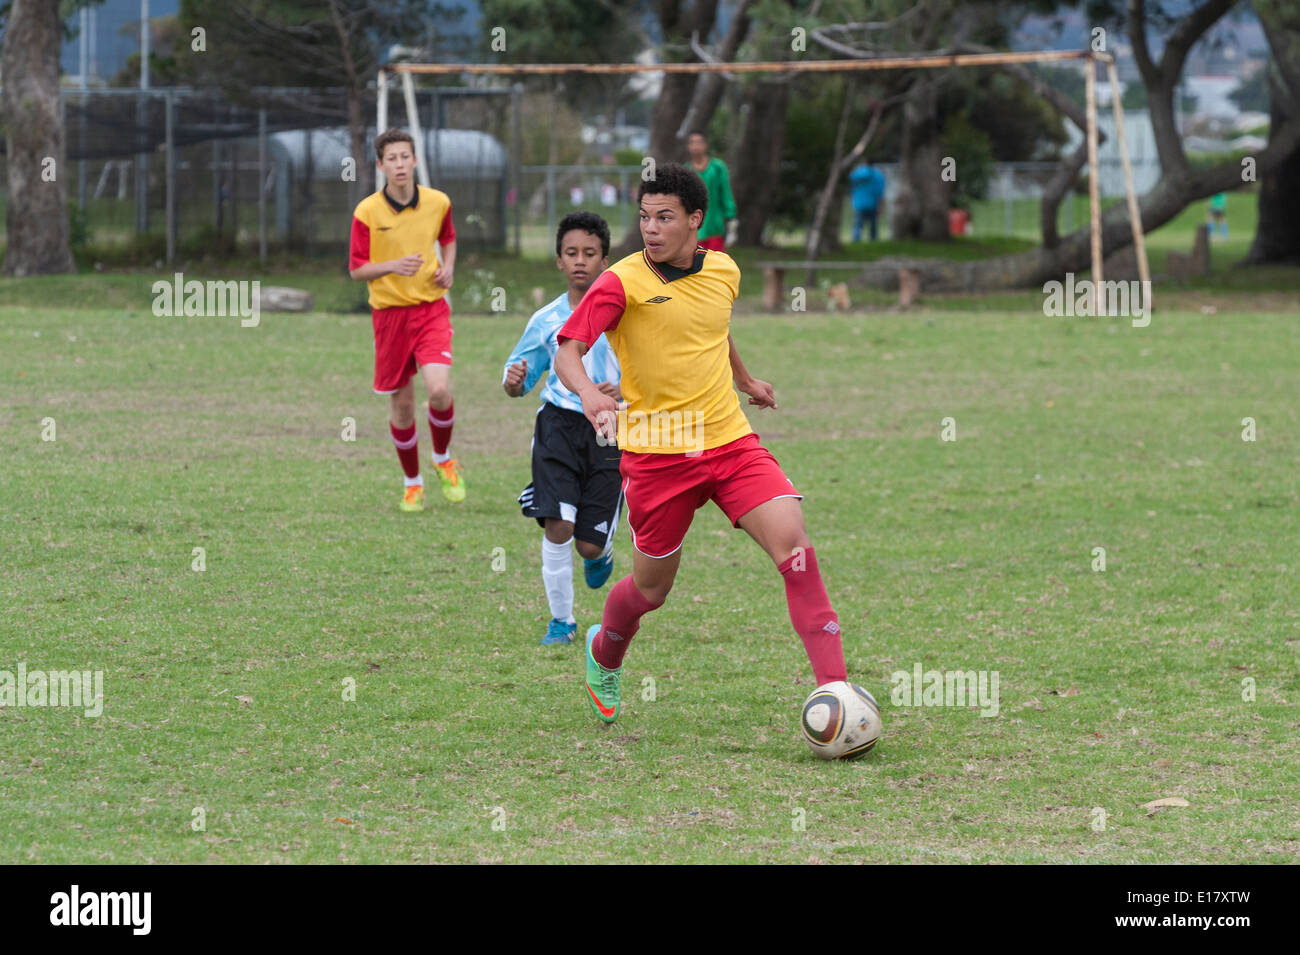 Junior football player running with the ball, looking where to pass, Cape Town, South Africa - Stock Image